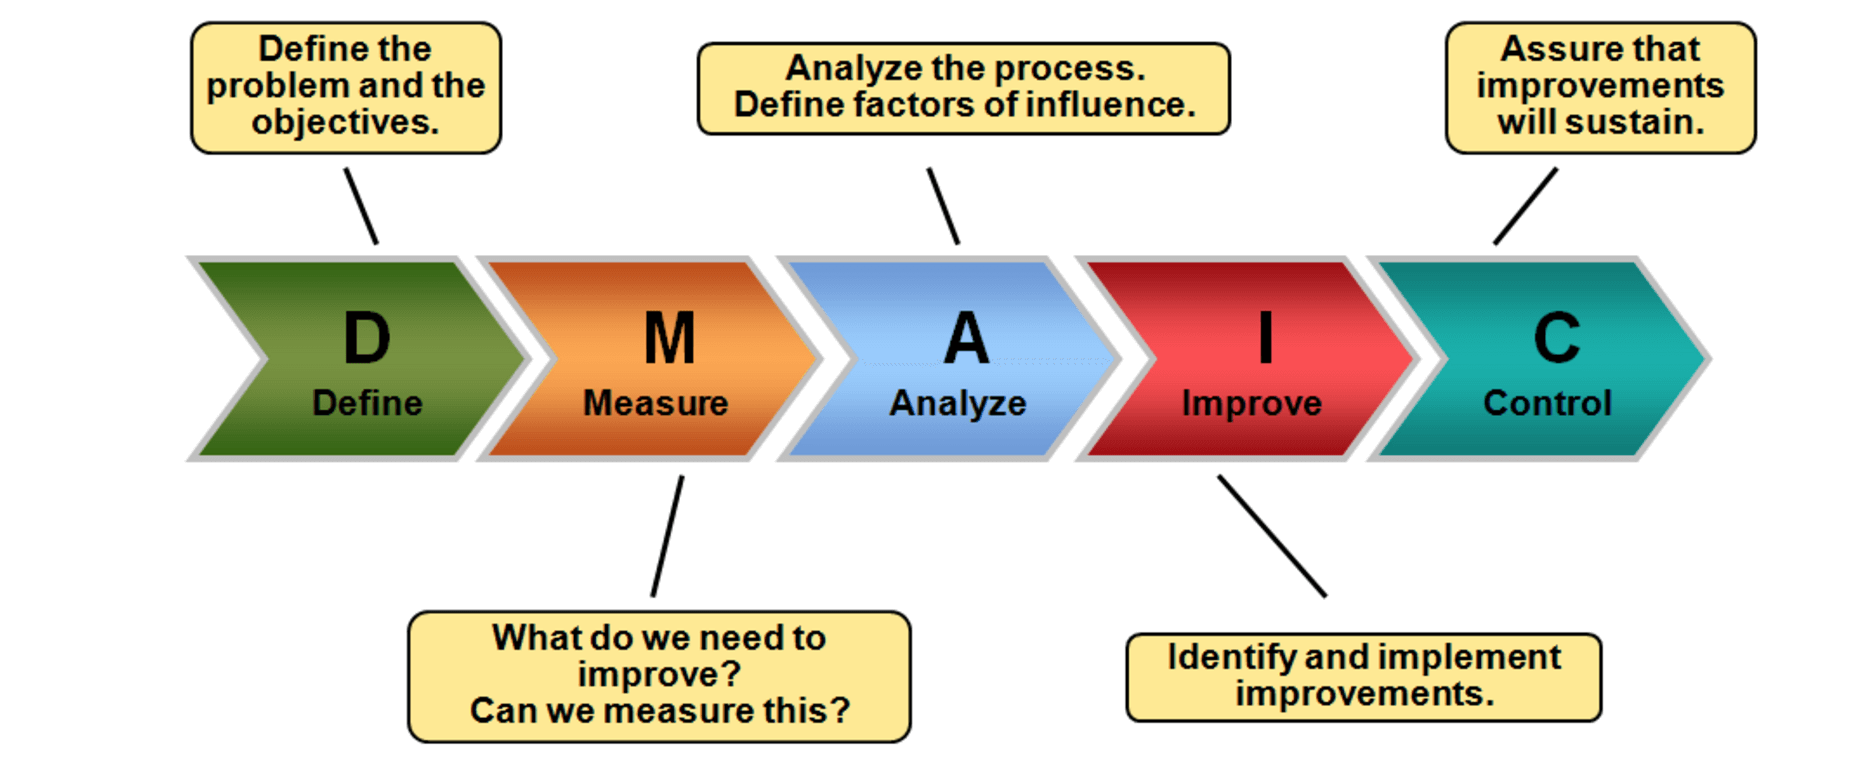 six sigma process improvement Lean six sigma is designed to improve the quality of process outputs by finding and removing the causes of errors and variation (inconsistency) within your business processes, particularly in the manufacturing and business sectors.